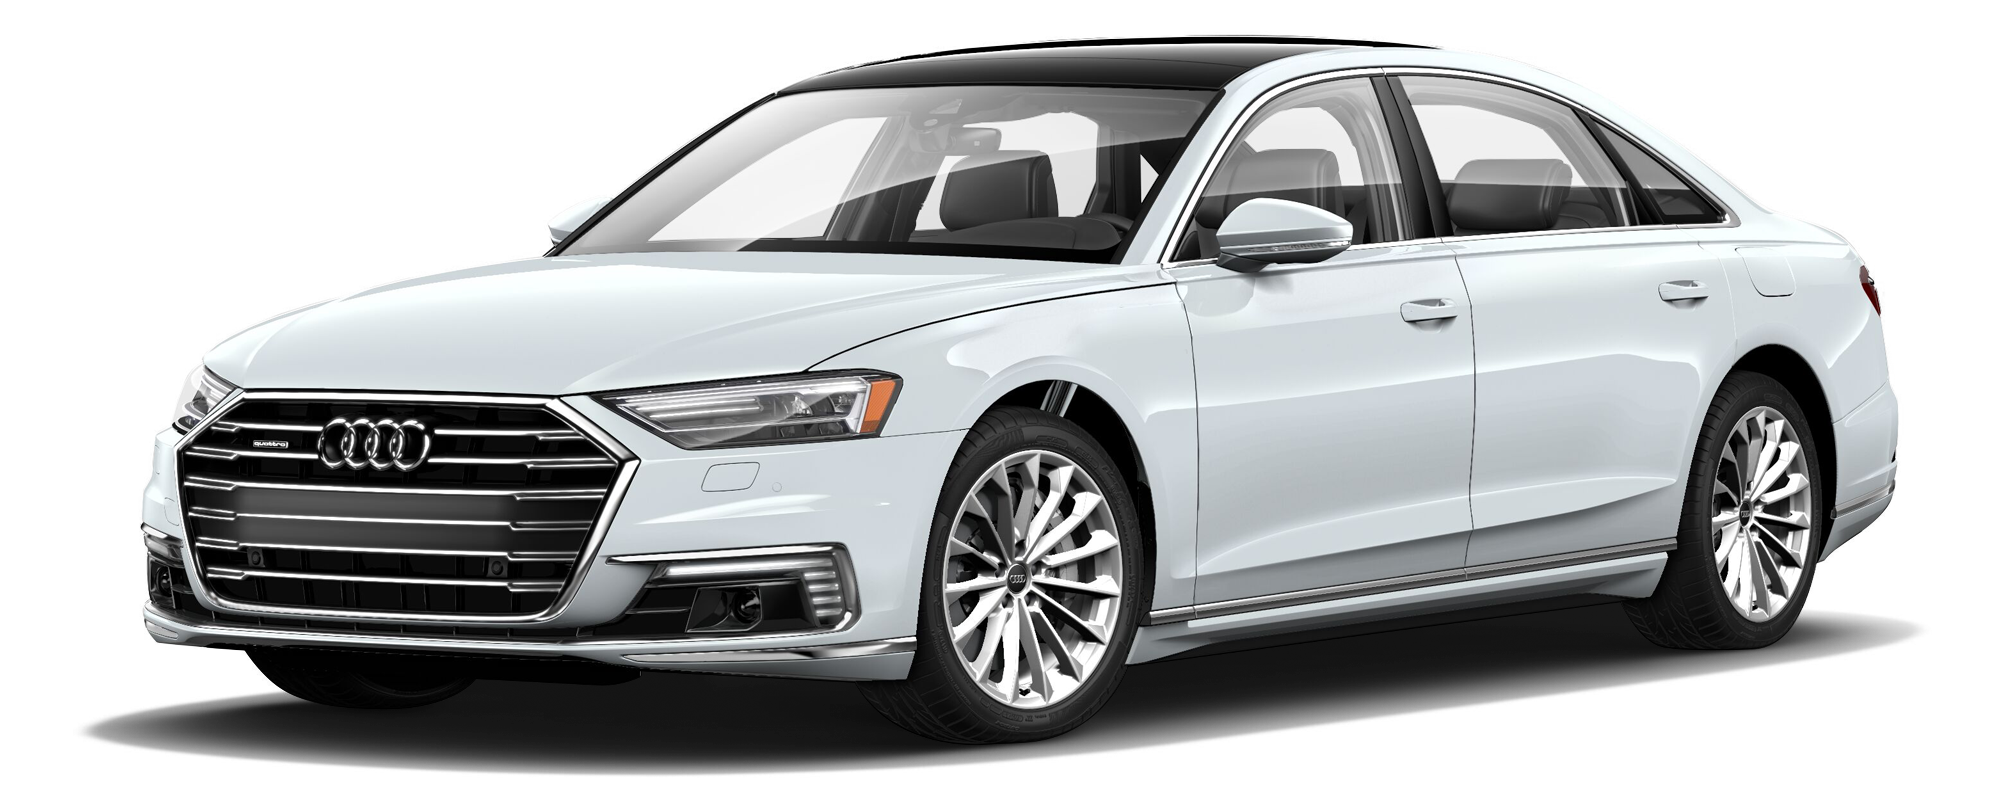 Audi A8 Lease Deal Image